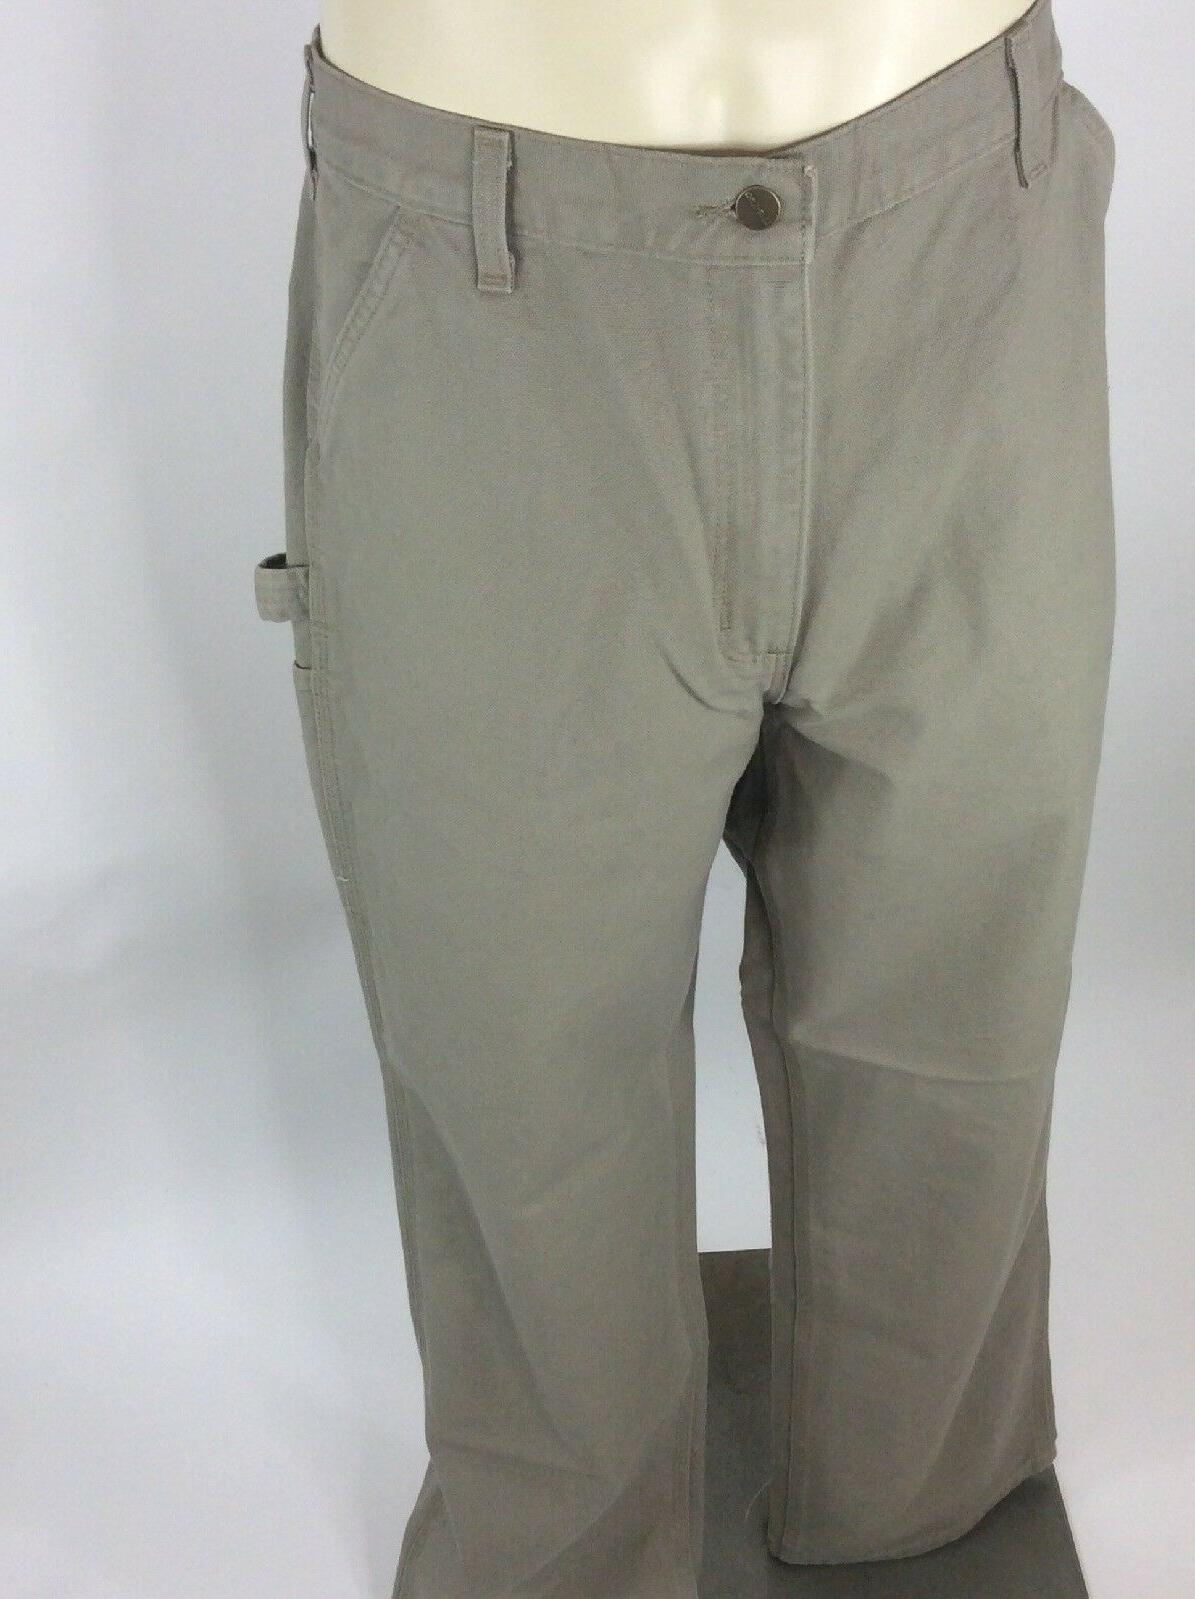 Carhartt Original Fit Washed Duck Work Pants 14806 Mens Cargo